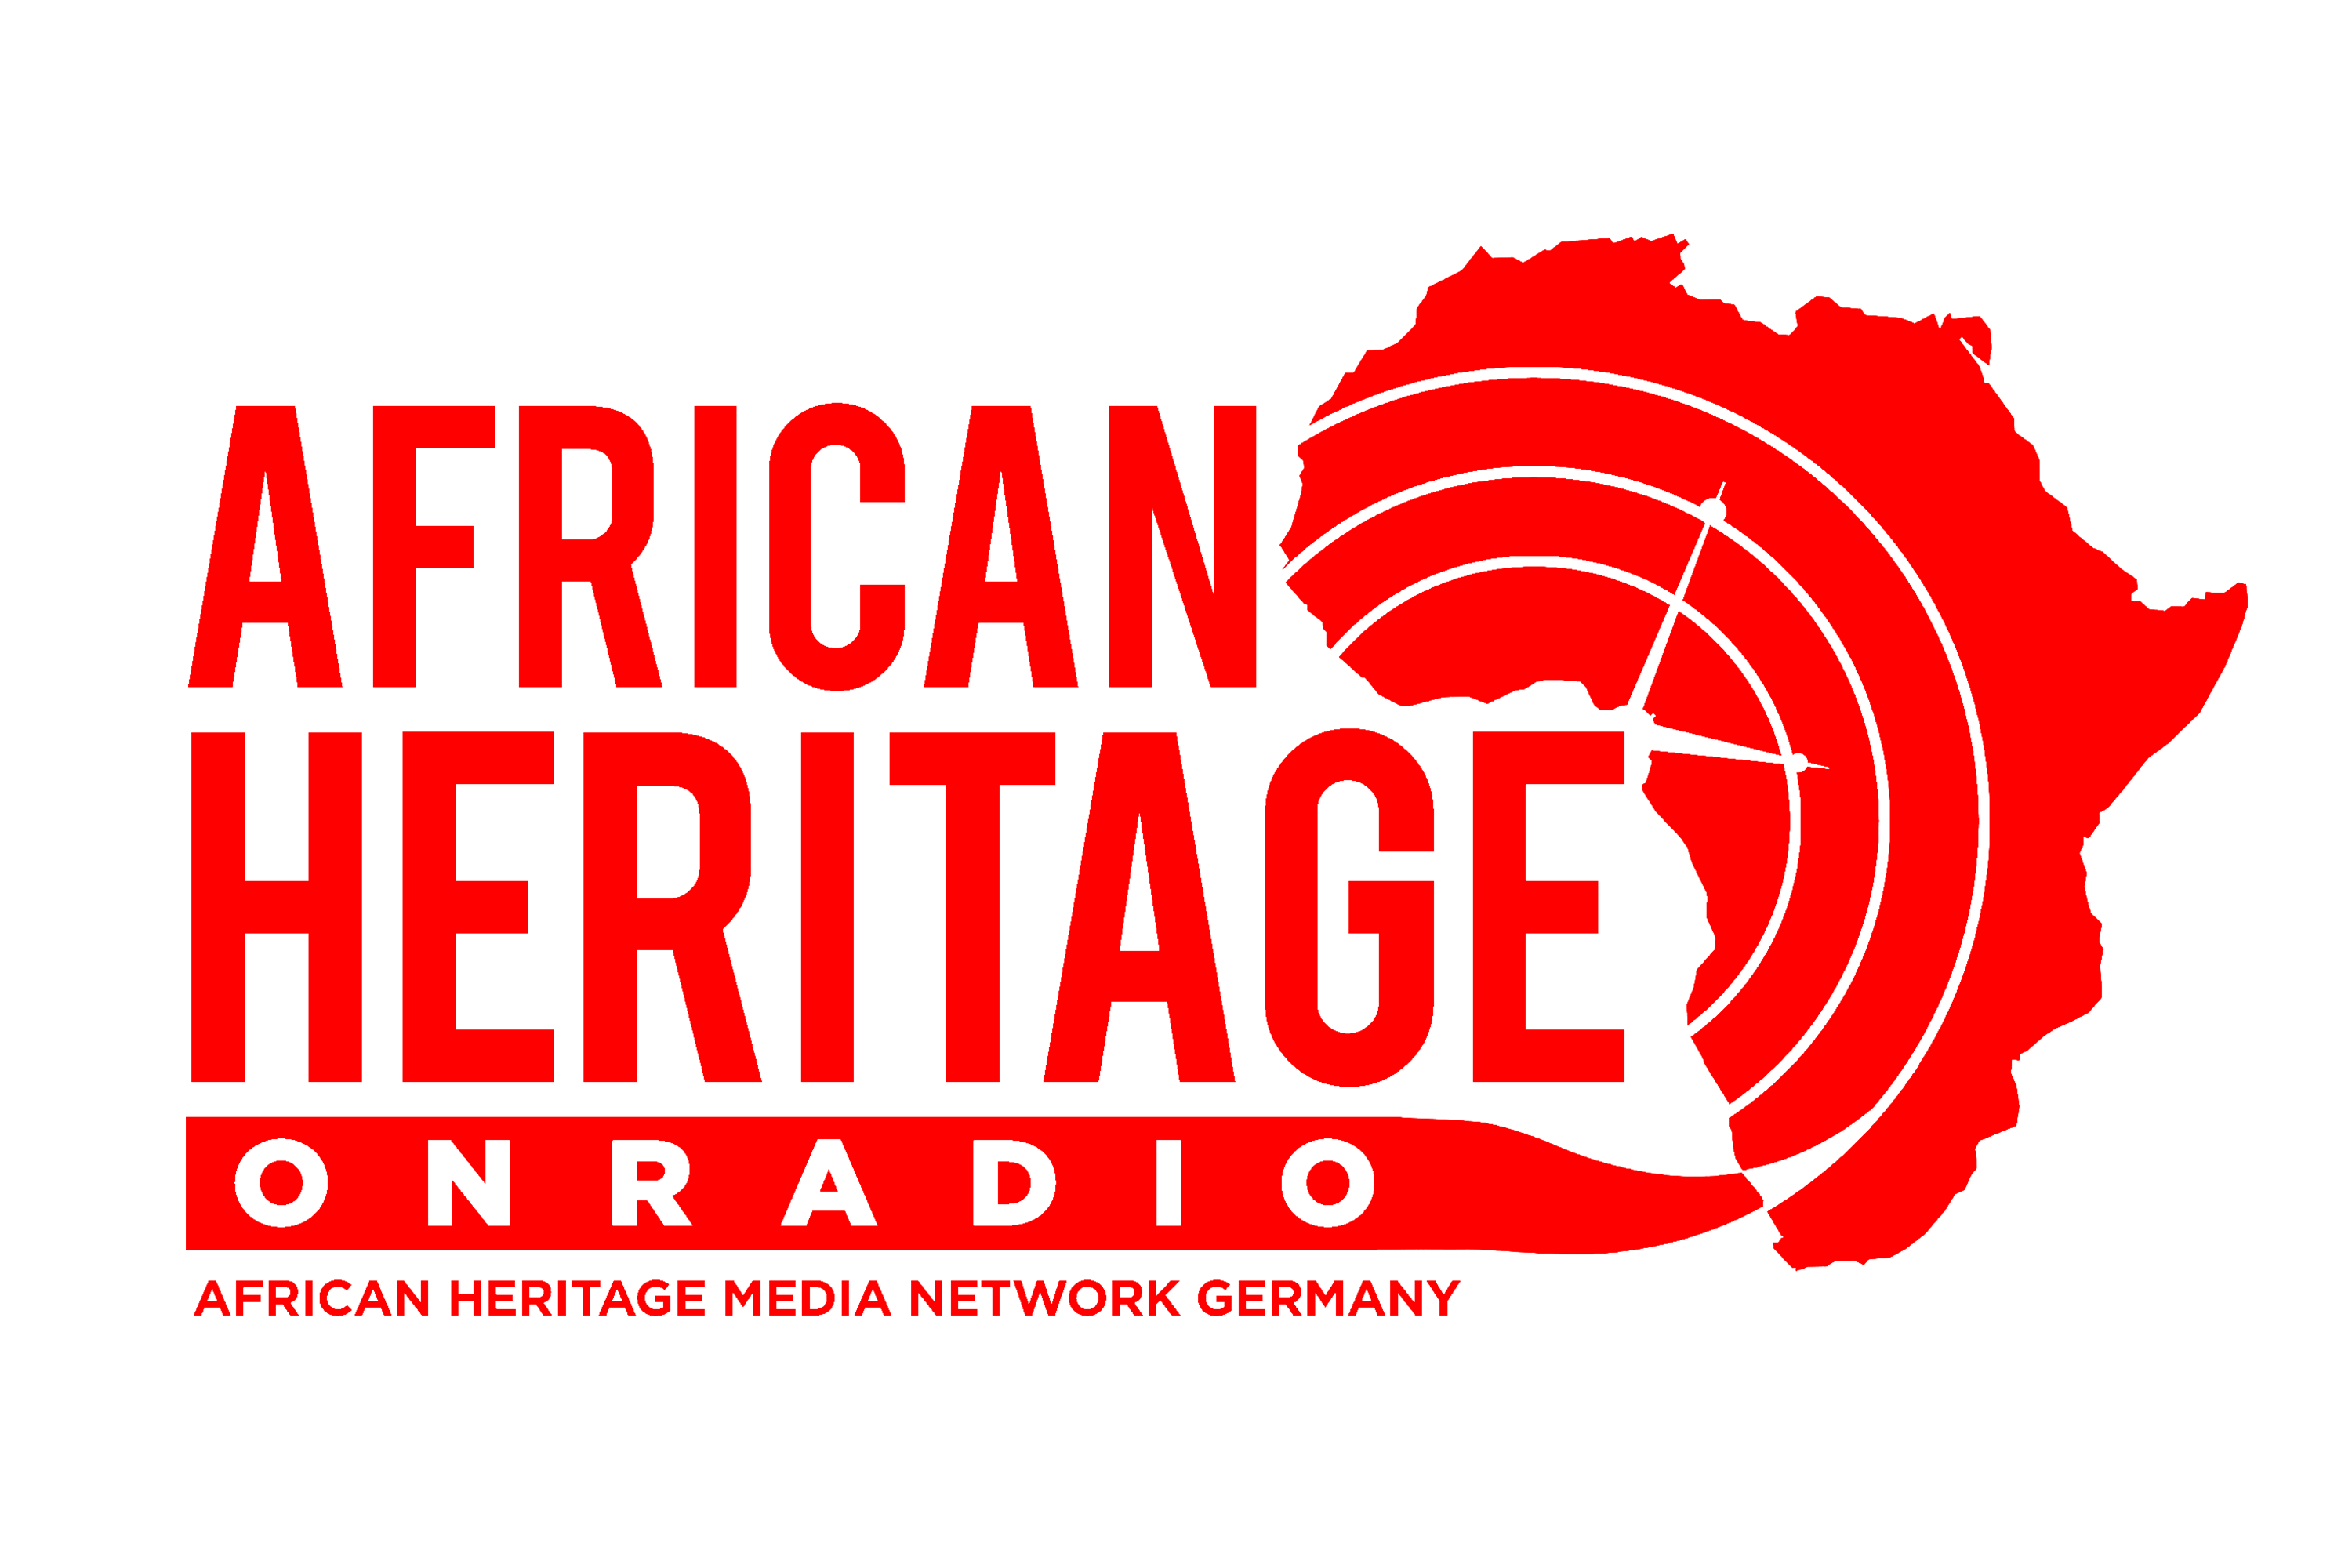 AFRICAN HERITAGE ON RADIO